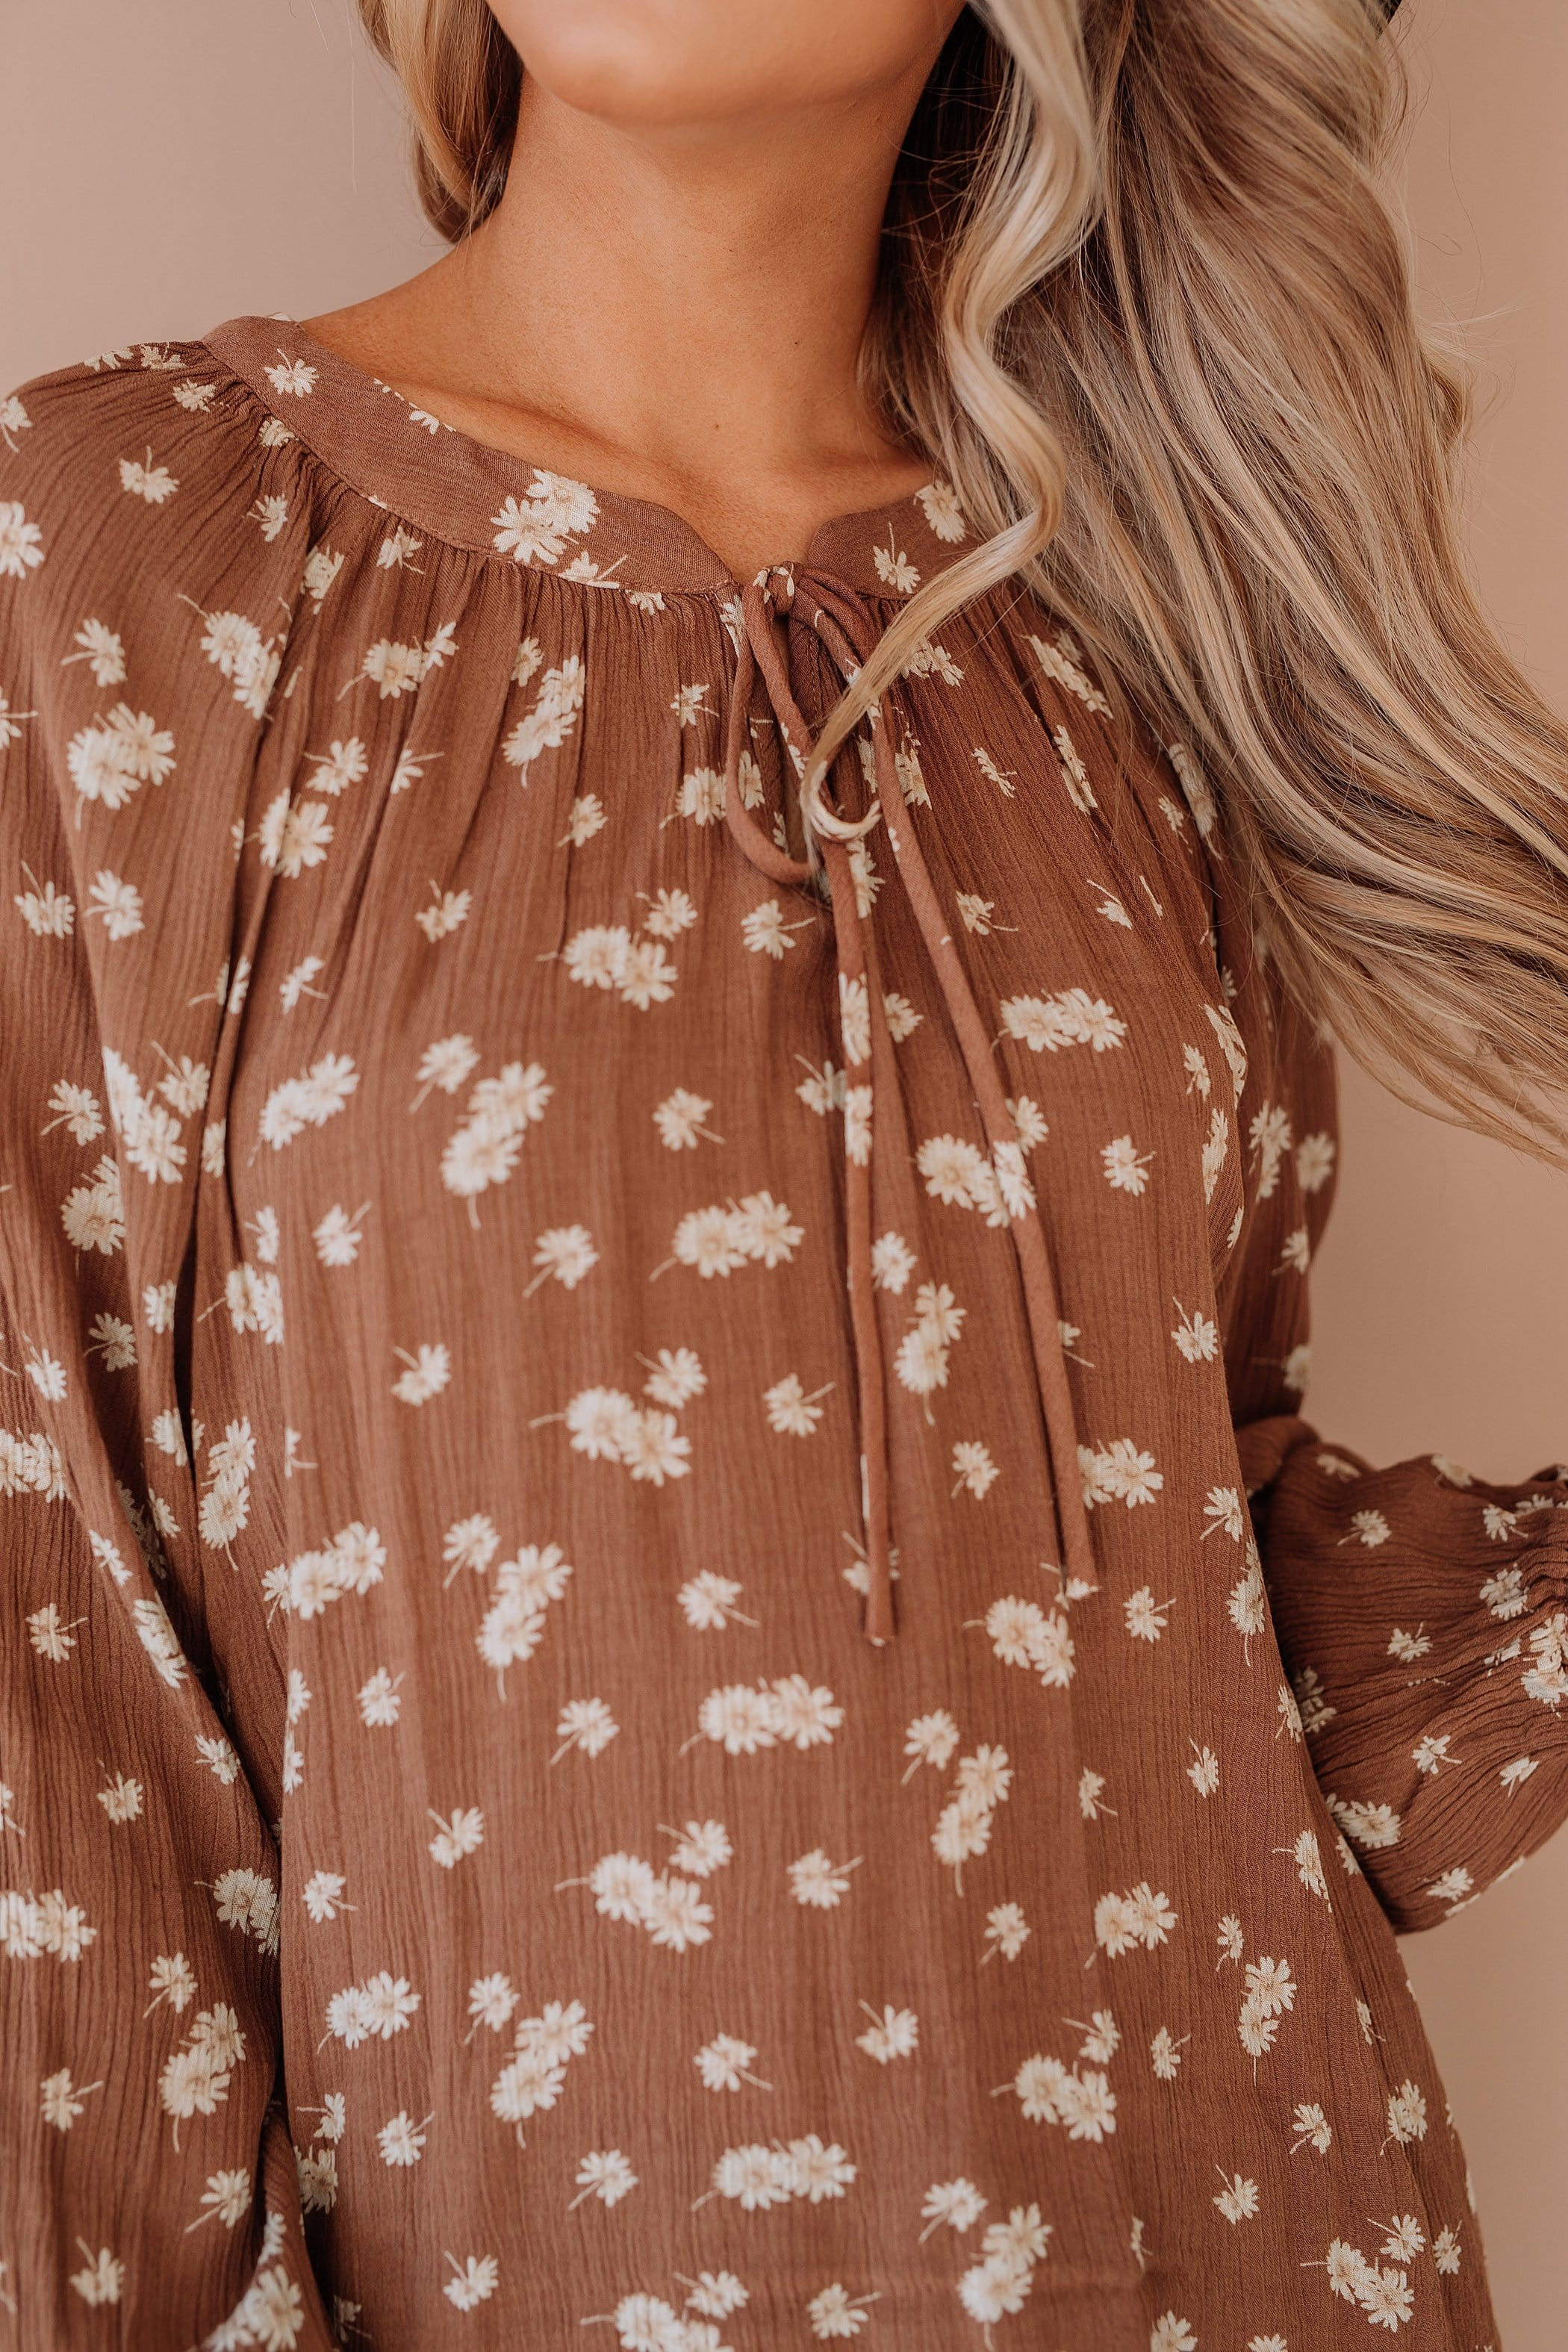 The Yasmine Peasant Top in Mocha